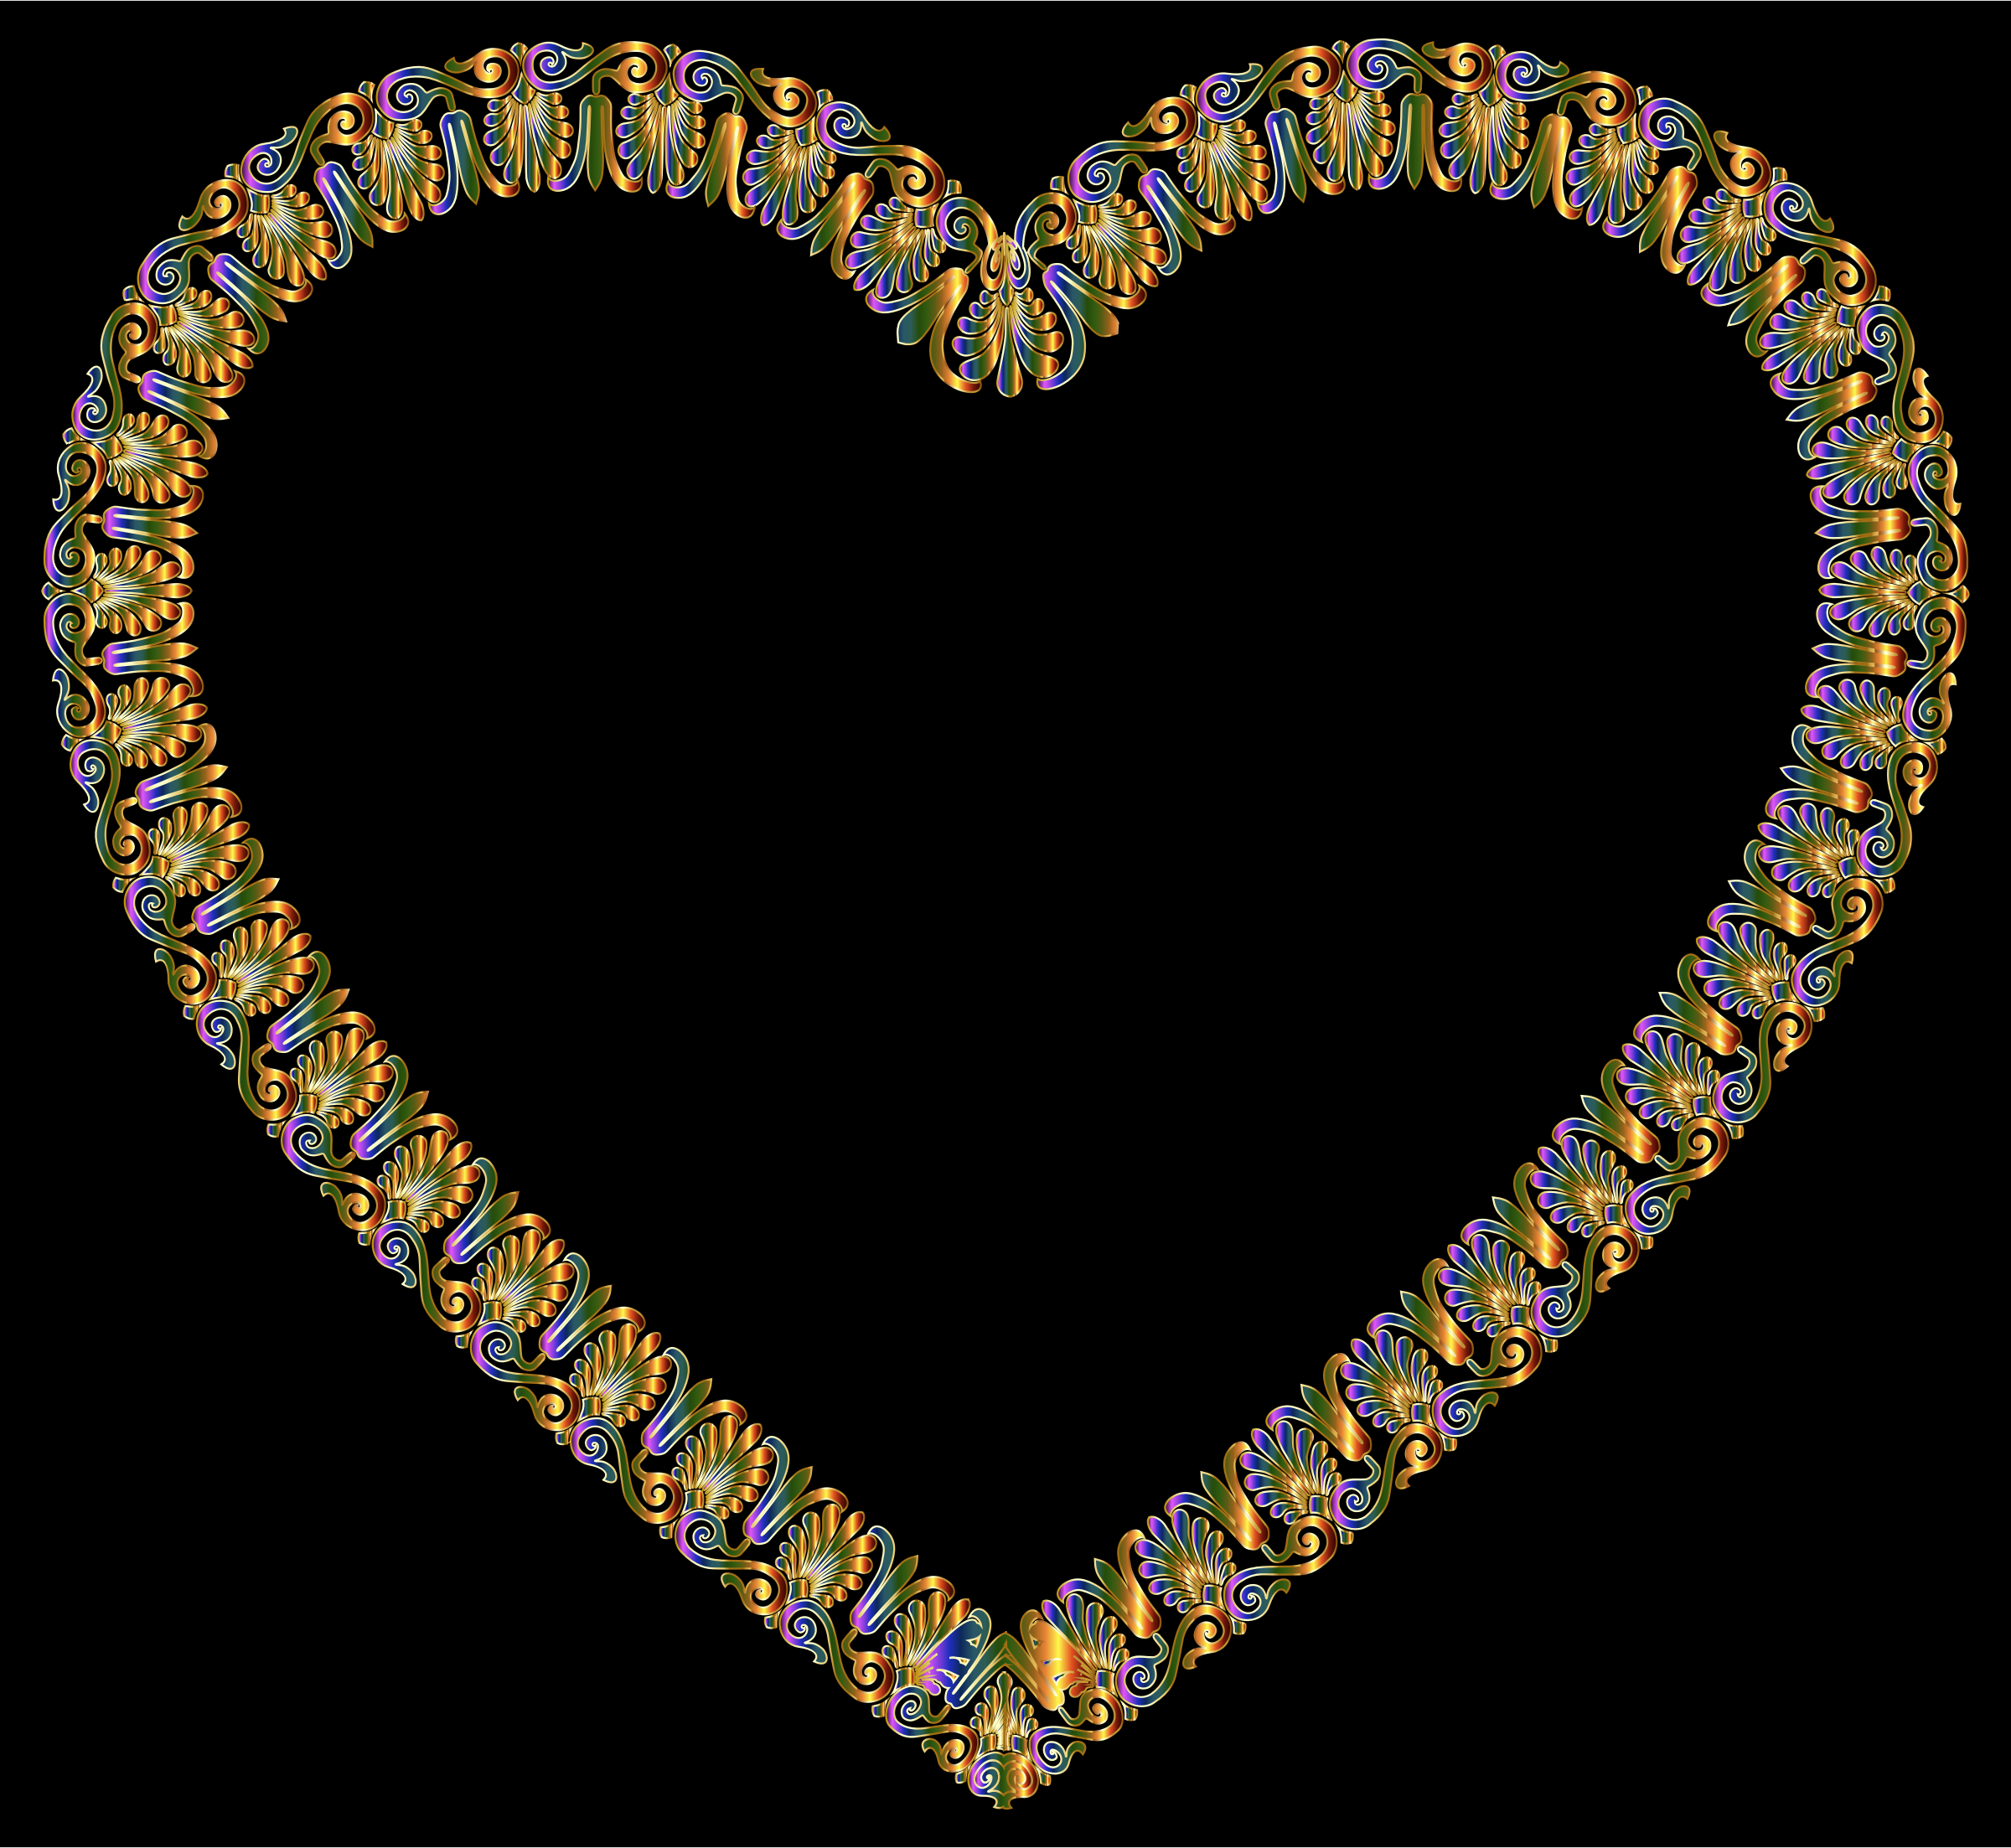 Chromatic Victorian Ornament Heart by GDJ